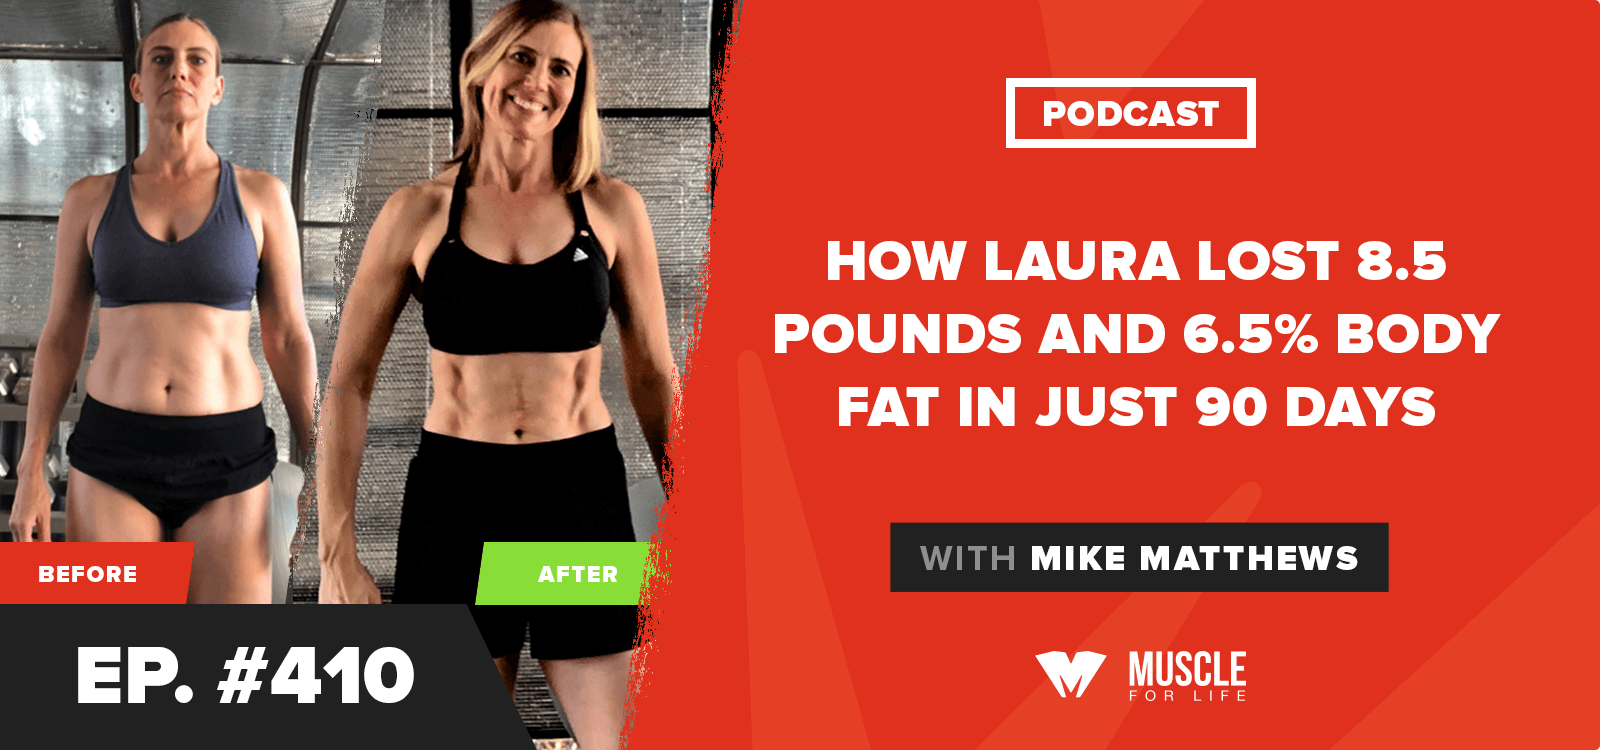 How Laura Lost 8.5 Pounds and 6.5% Body Fat in Just 90 Days